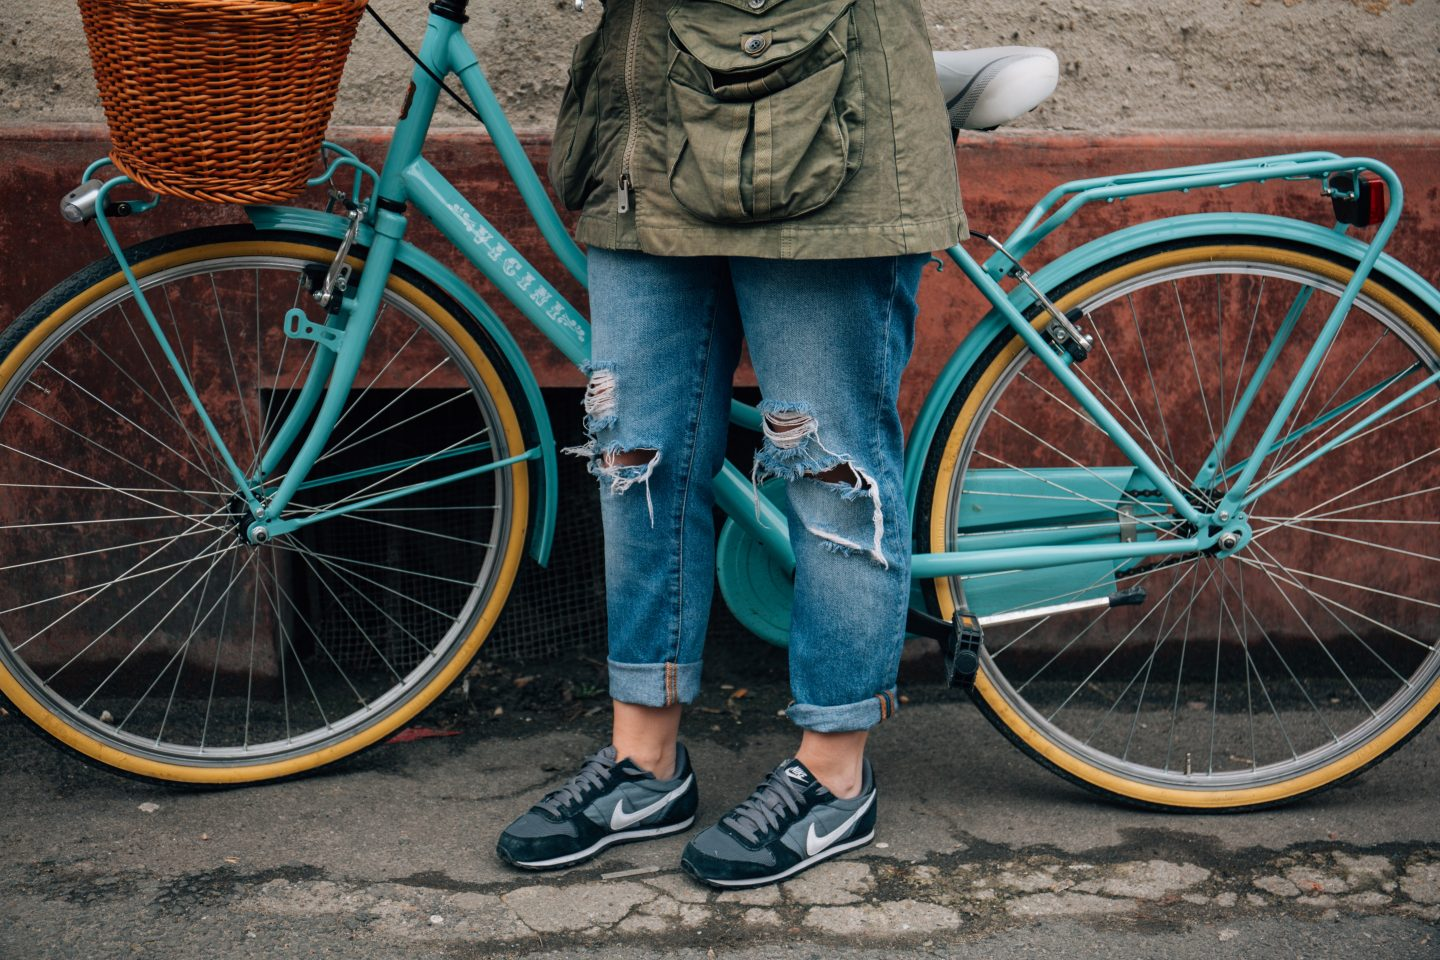 Woman with Bike- Alisa Anton on Unsplash